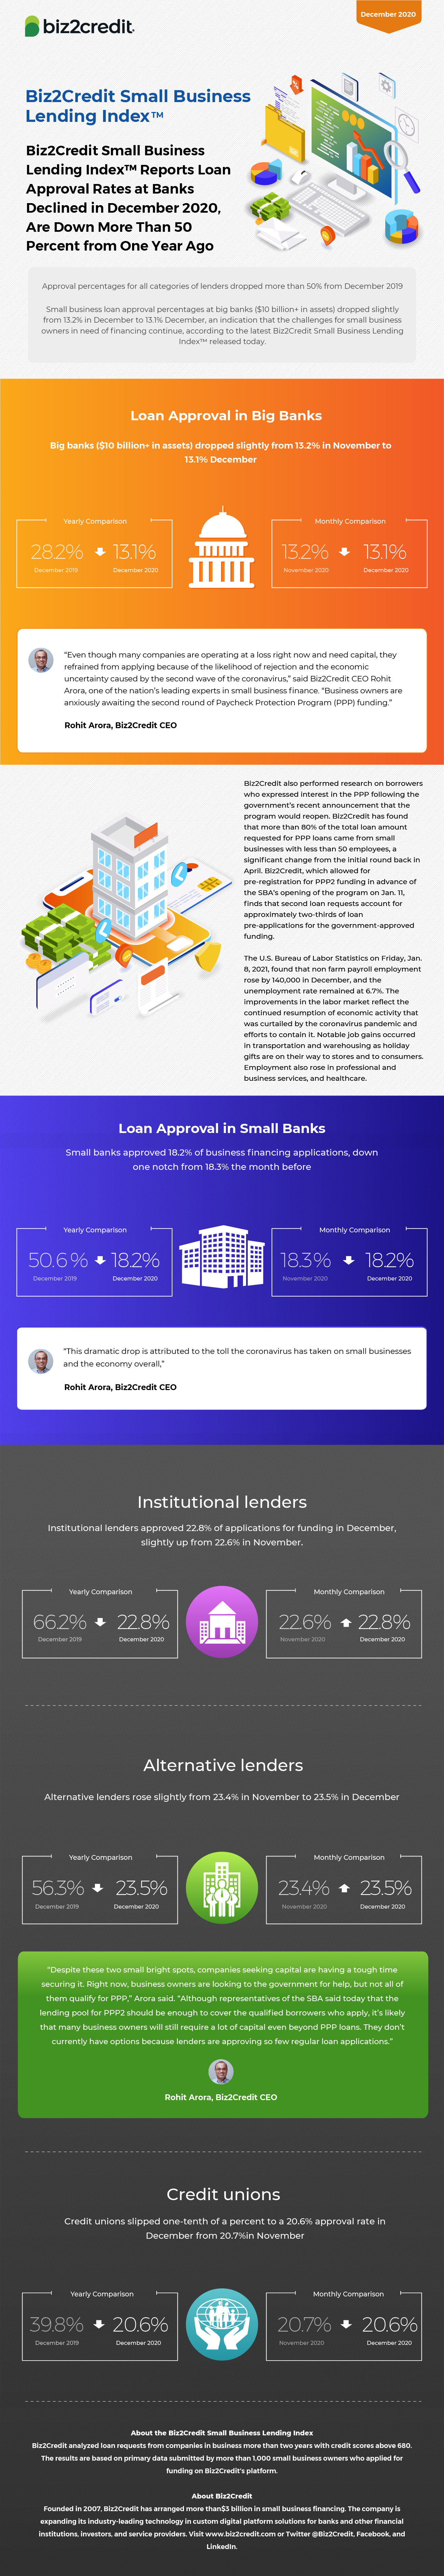 December 2020 Lending Index Infographic